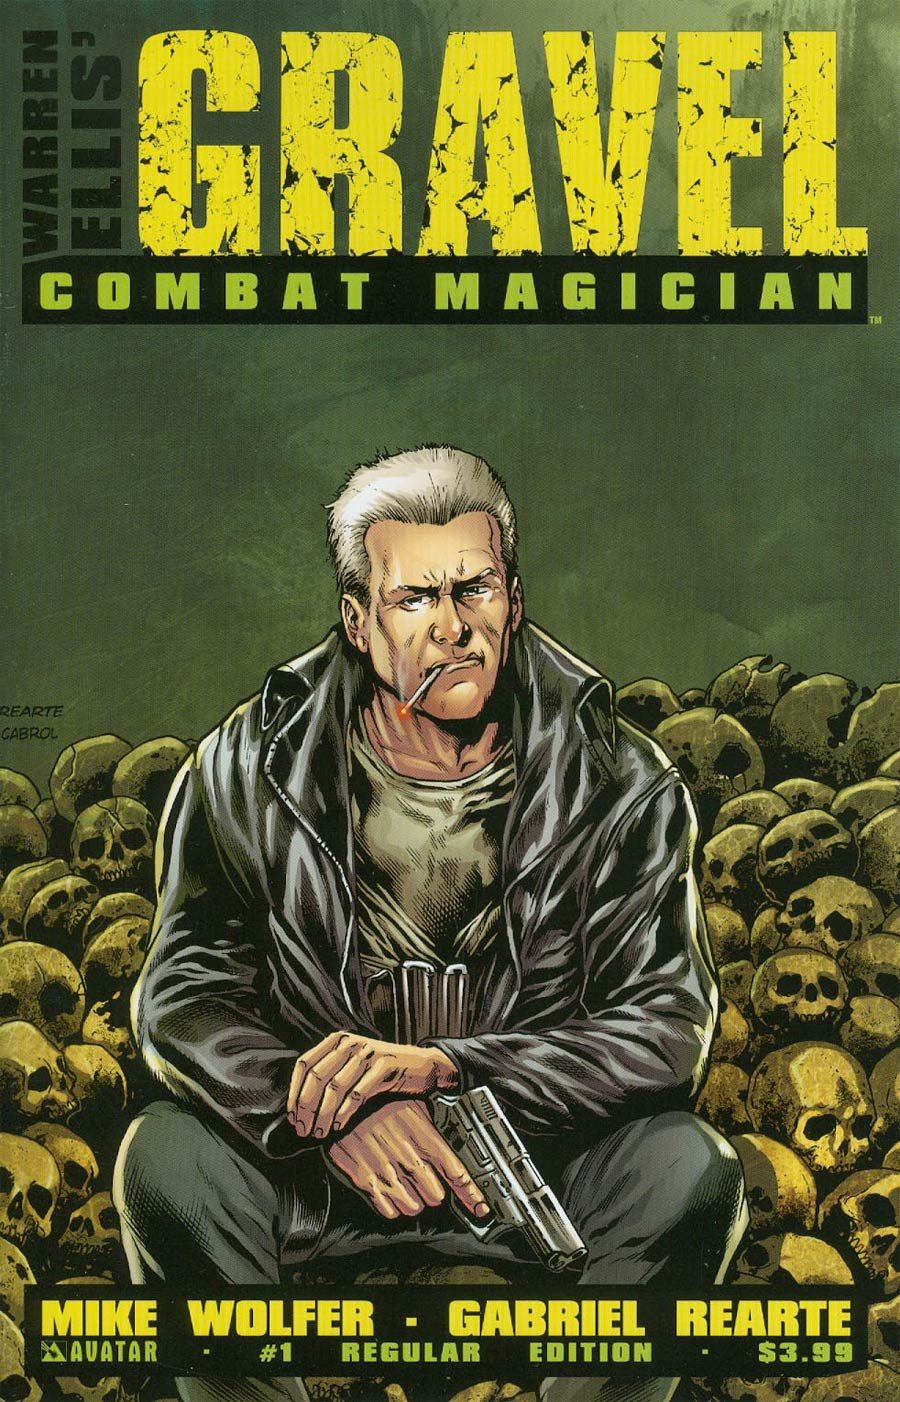 Gravel Combat Magician #1 Cover A Regular Cover